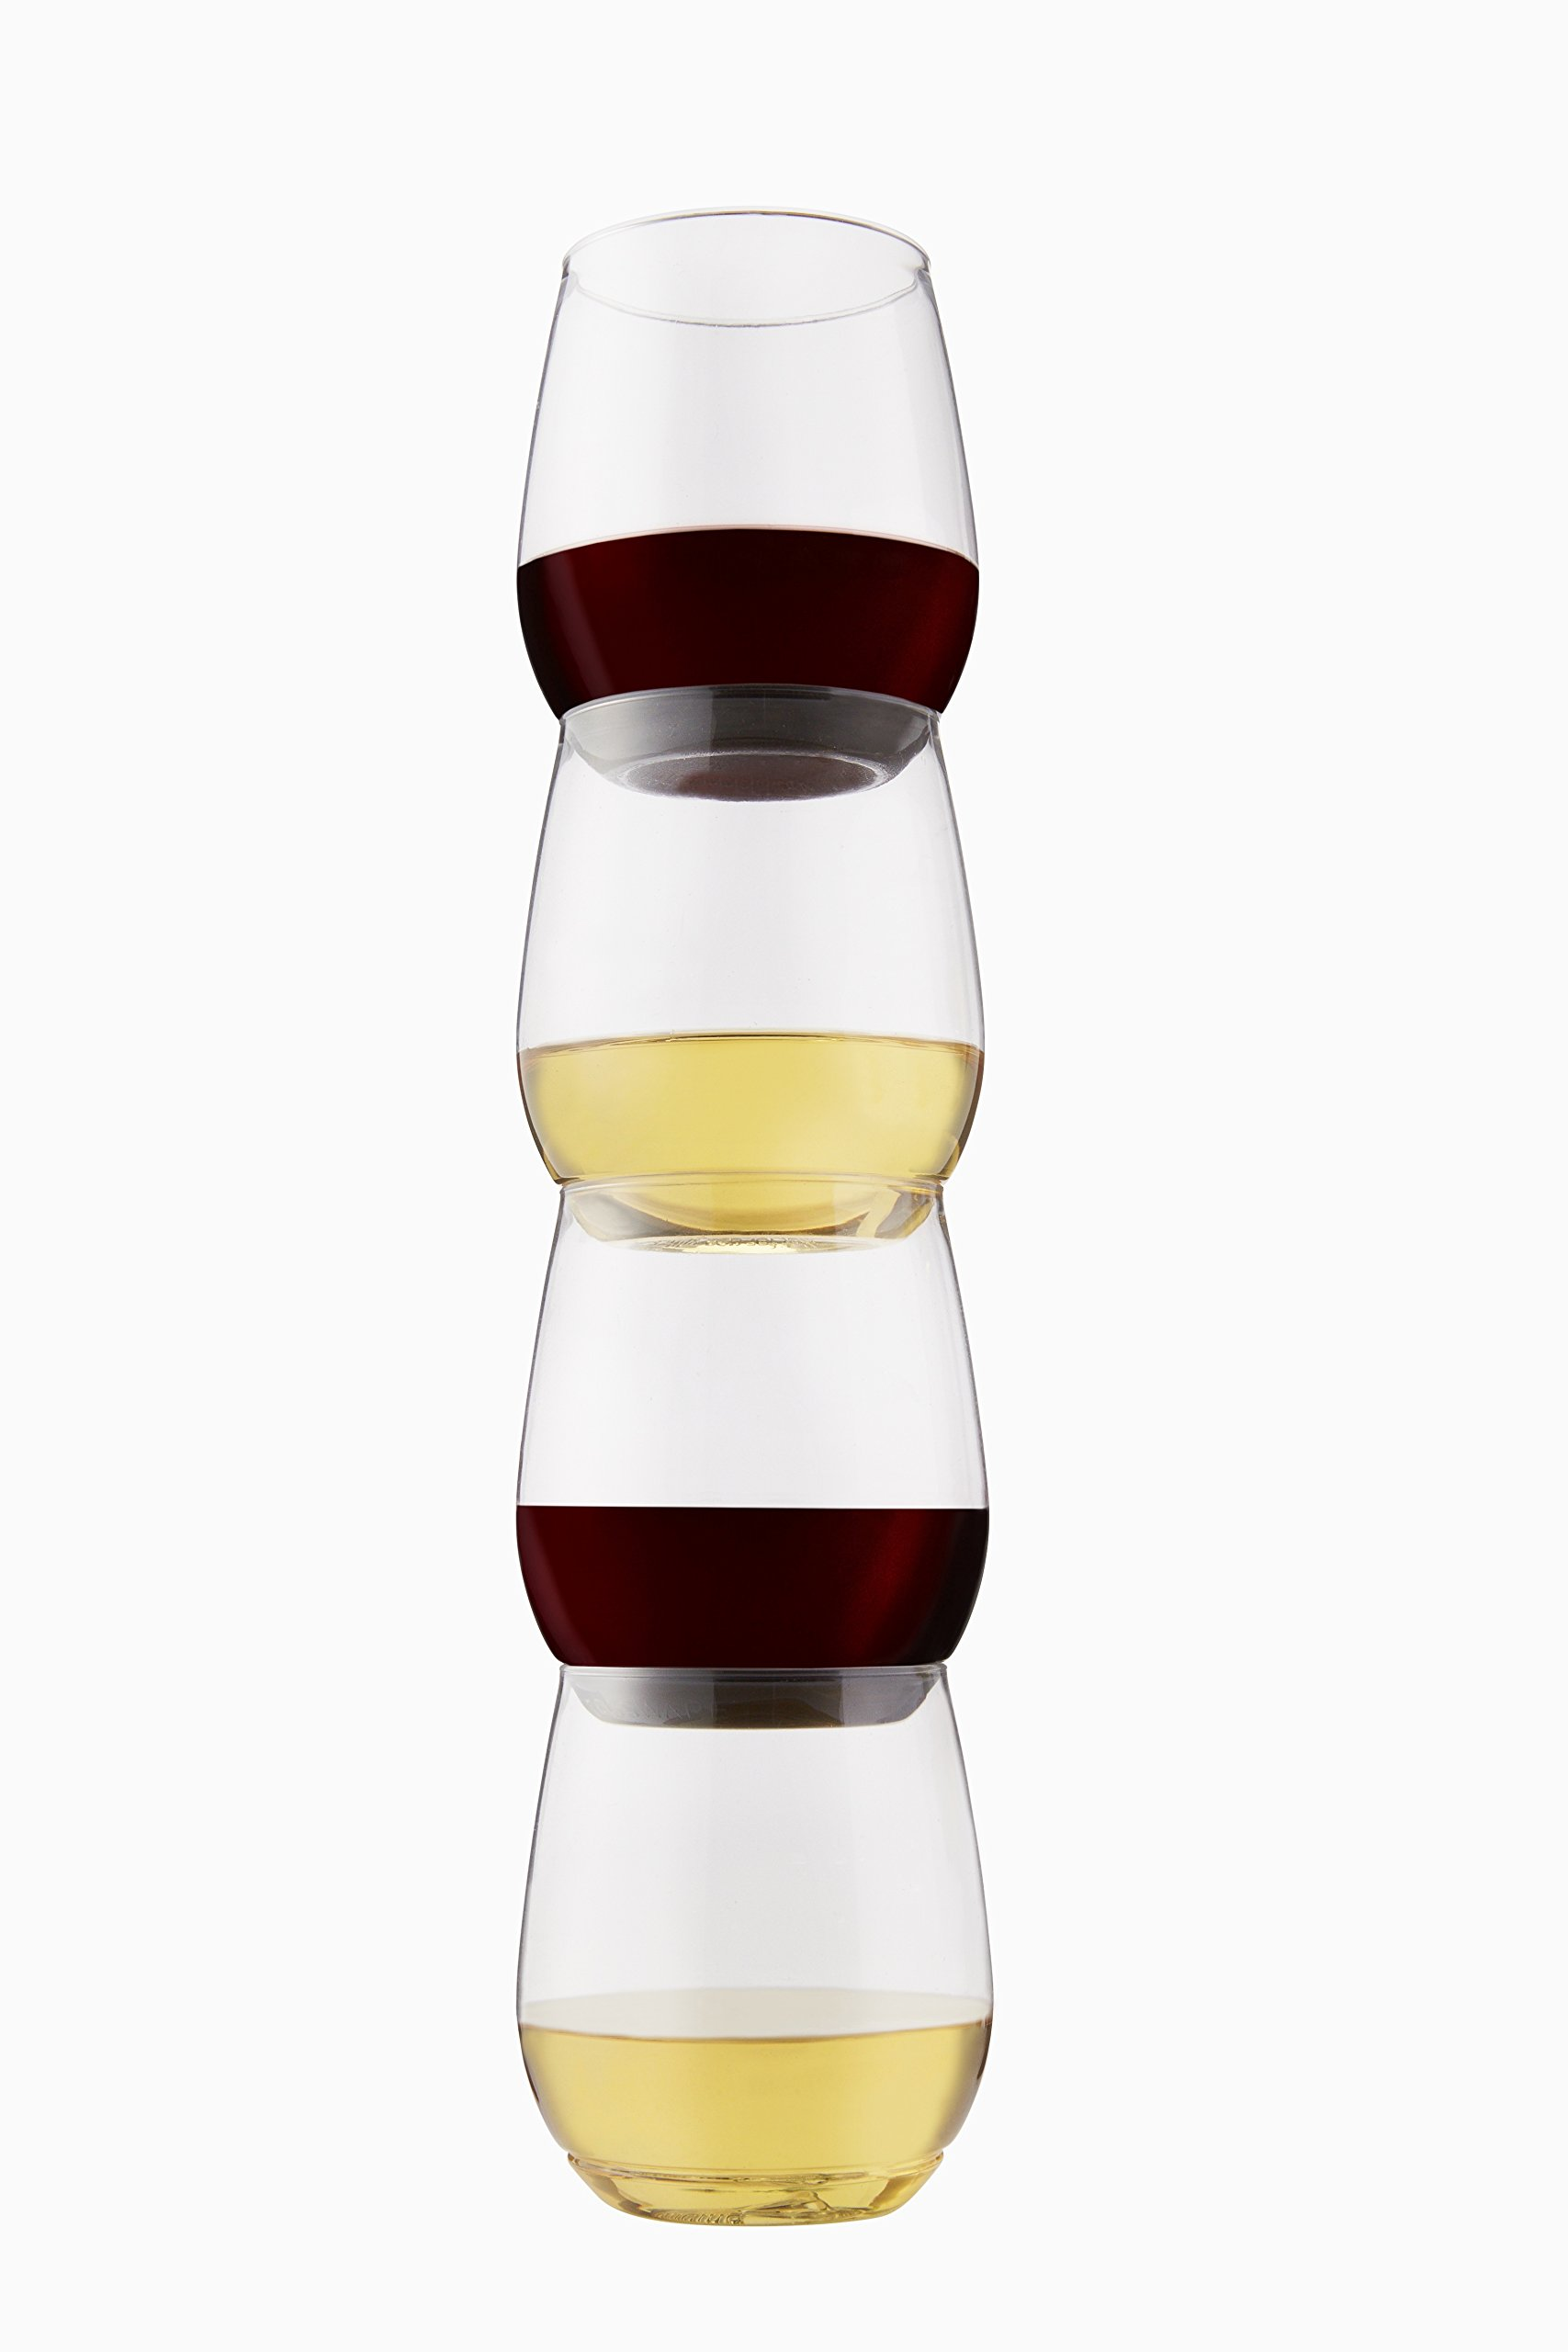 TOSSWARE 14oz Shatterproof Wine & Cocktail Glass, SET OF 12 BPA-FREE Upscale Recyclable/Disposable Plastic Wine Cups by TOSSWARE (Image #4)